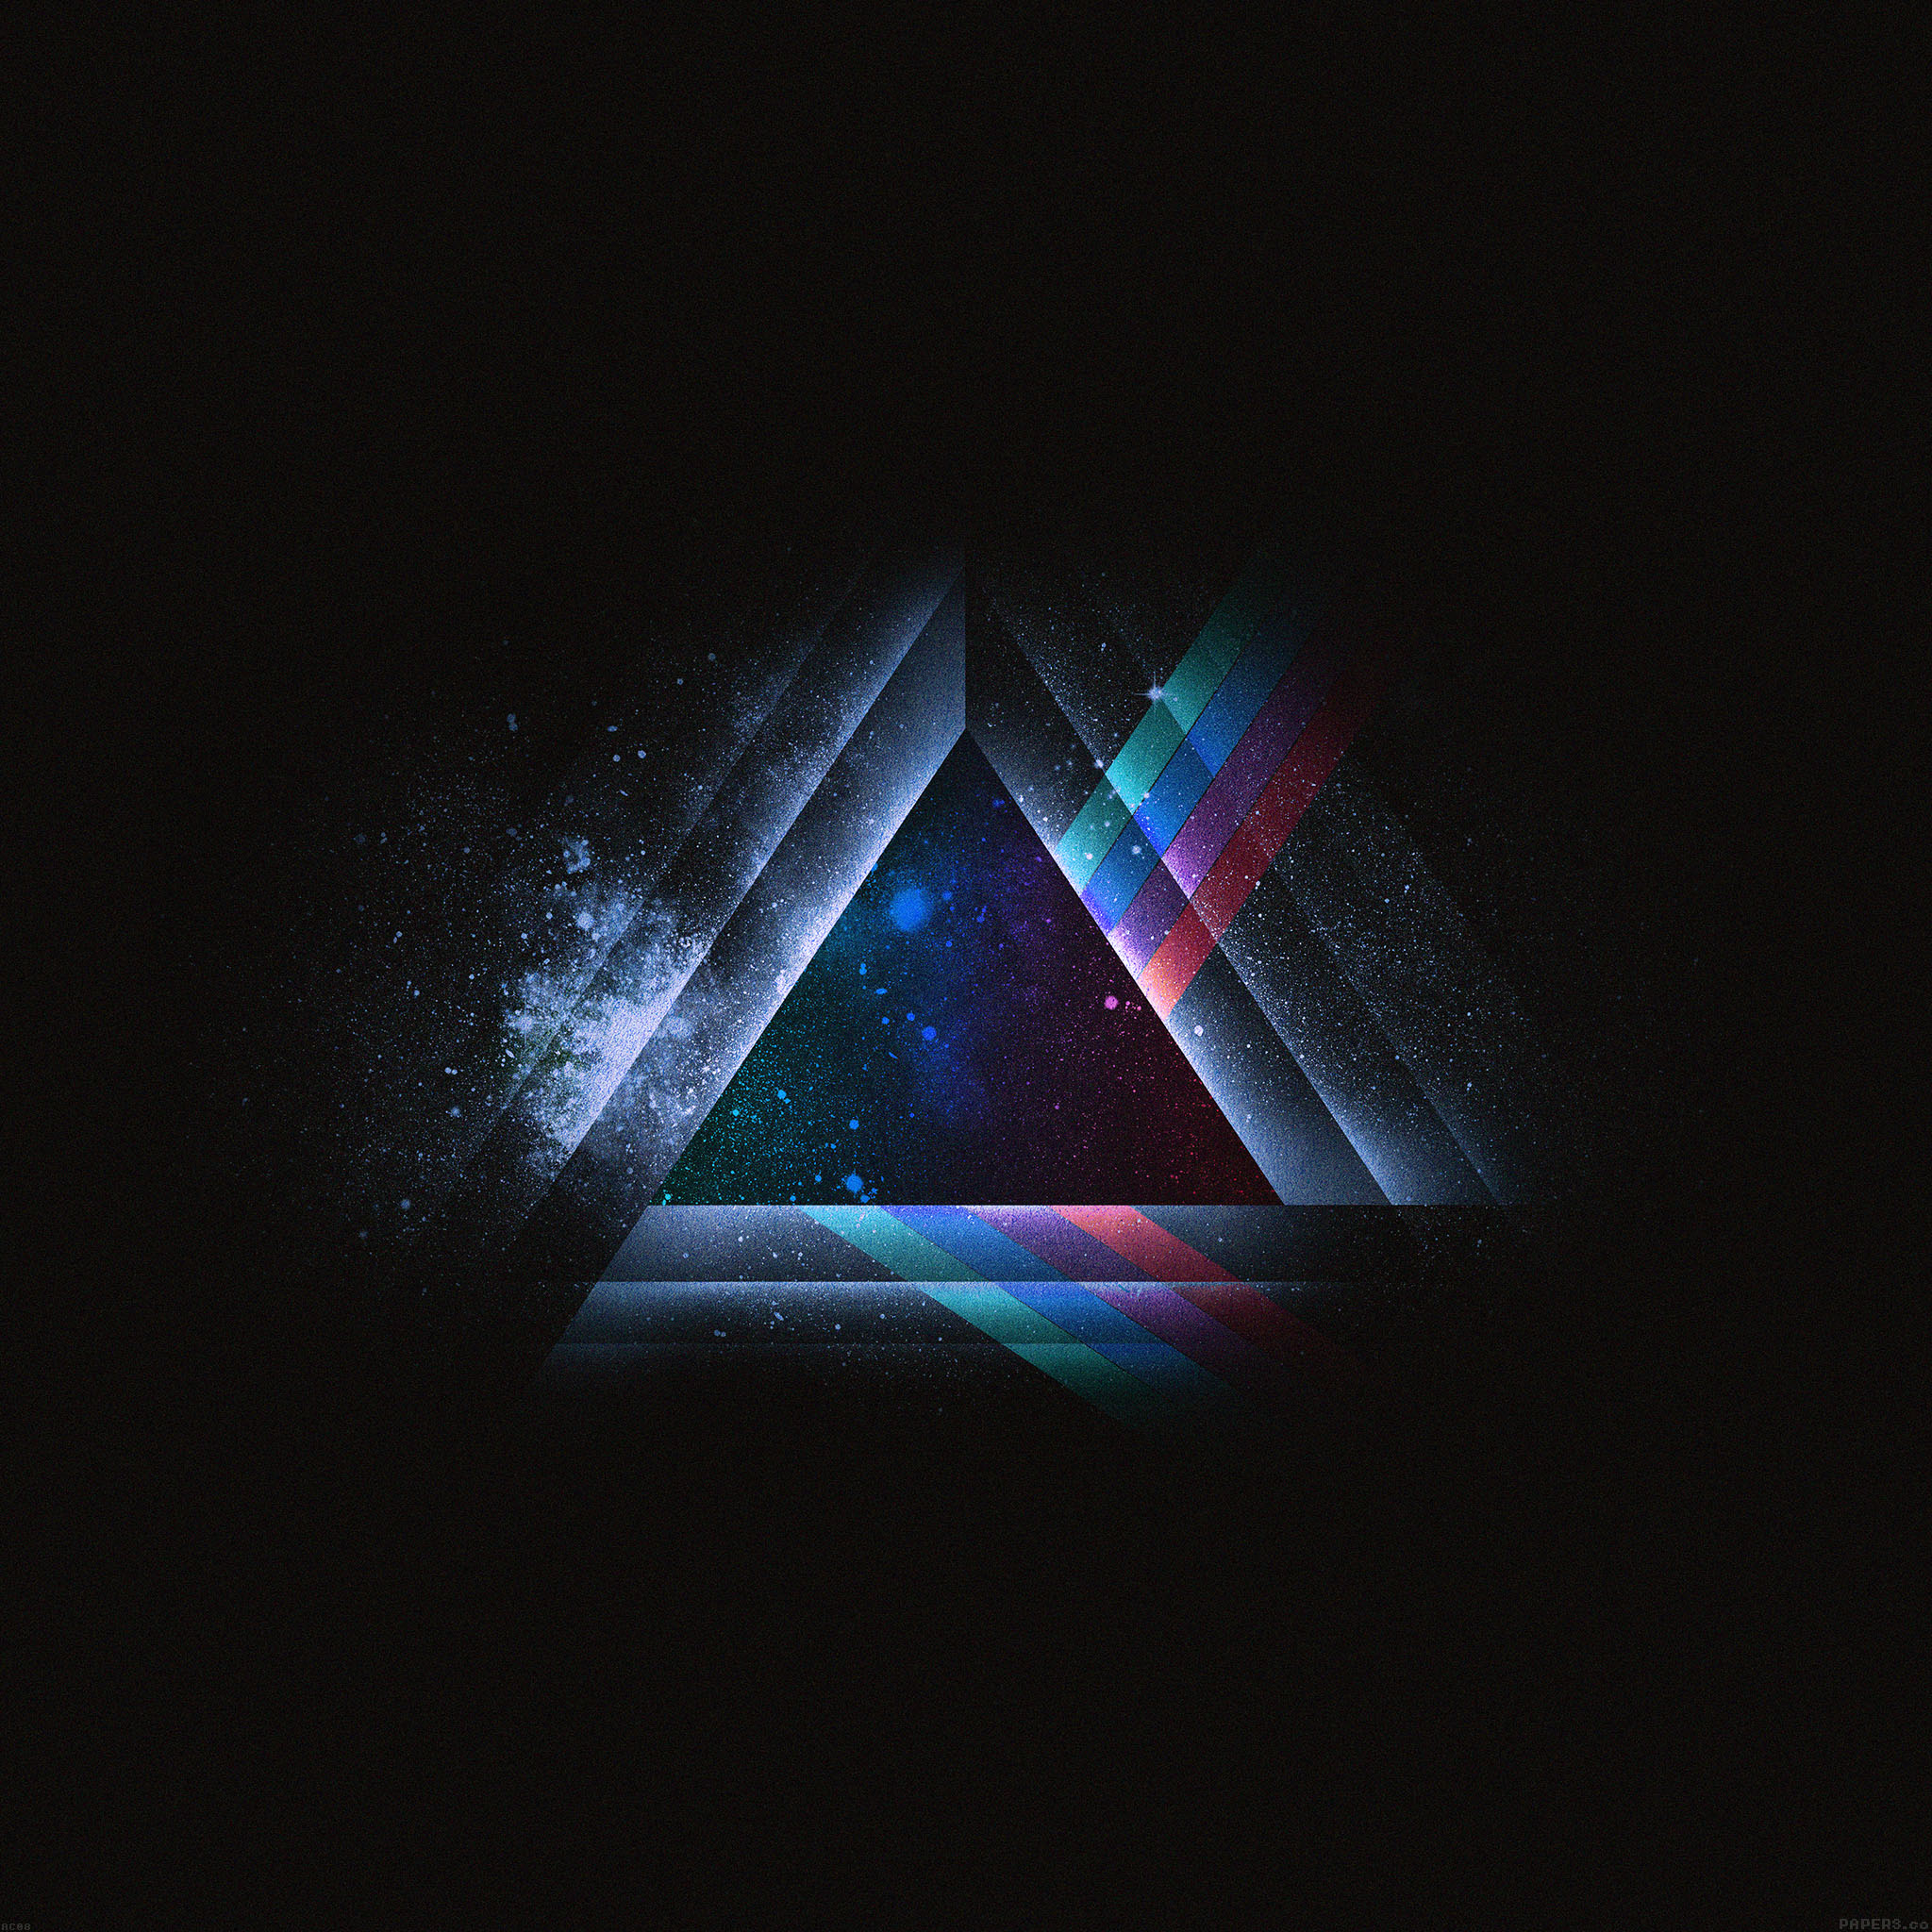 ac08-wallpaper-triangle-art-blue-rainbow-illust-graphic ...